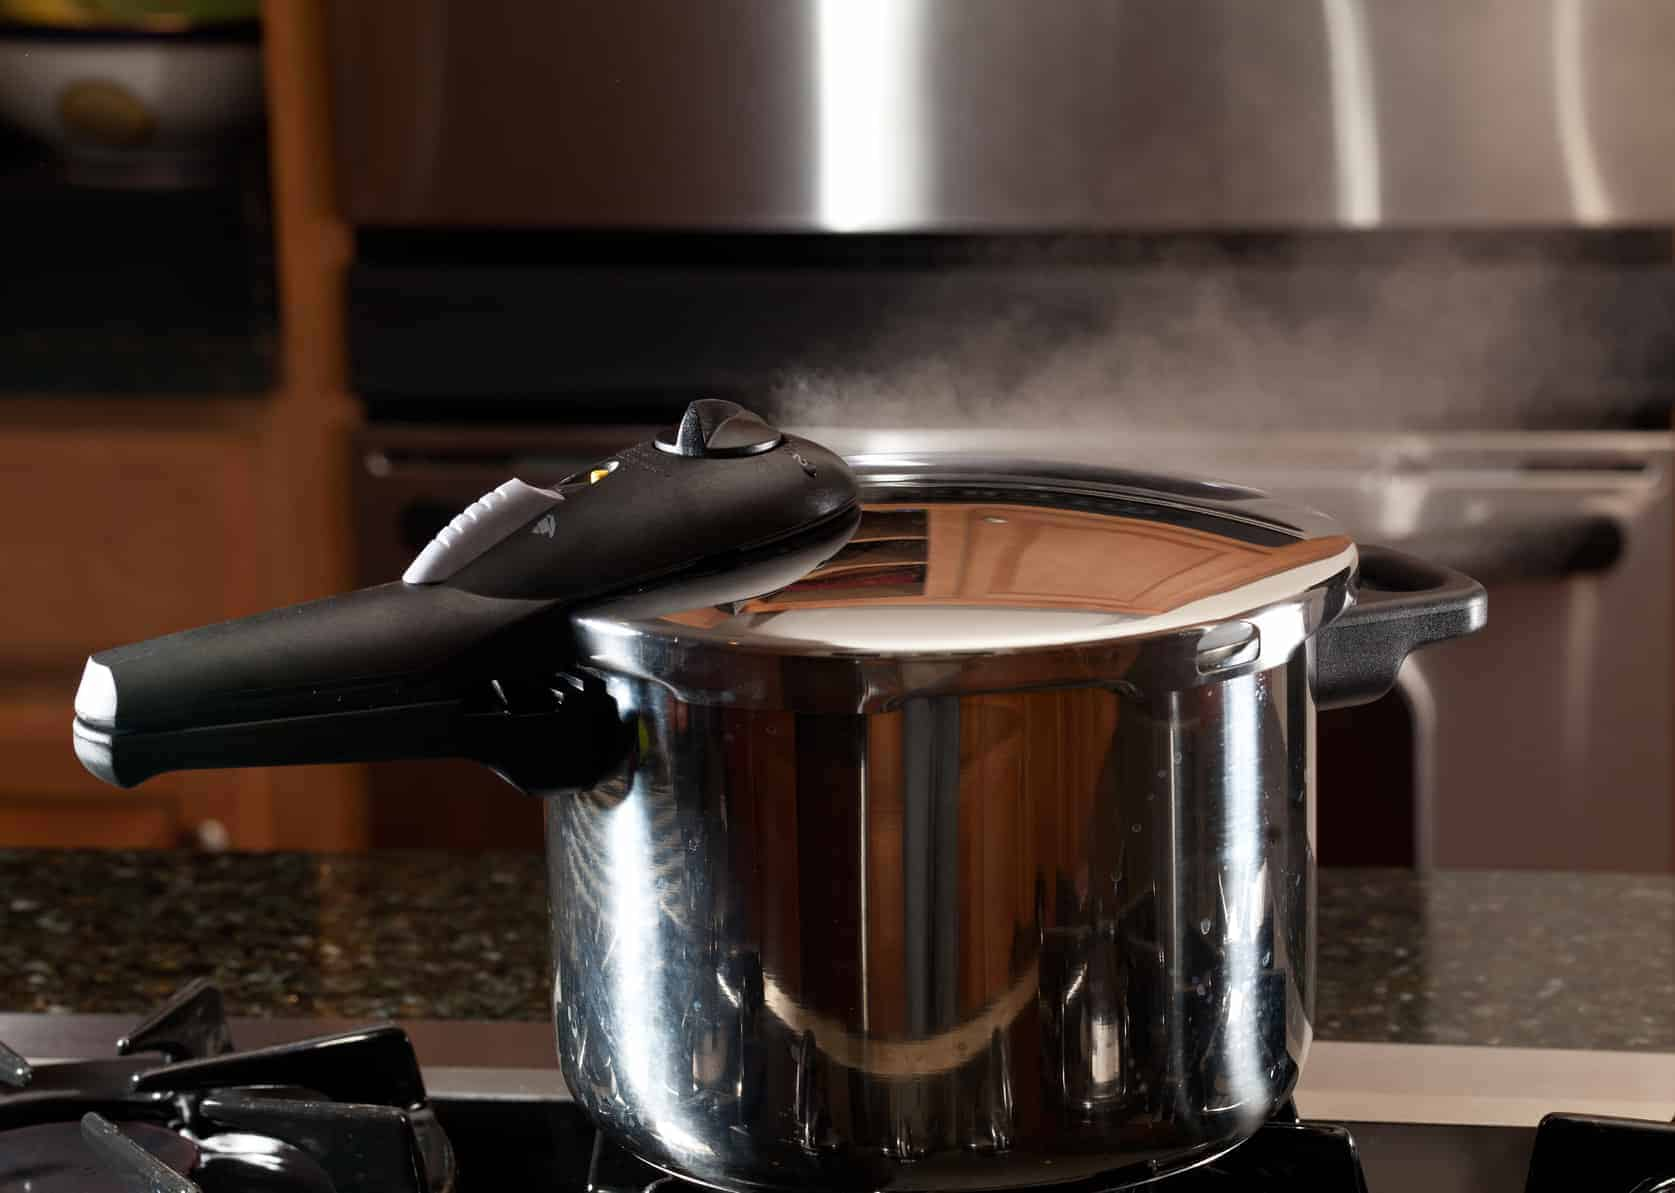 Steam escaping from new pressure cooker pot